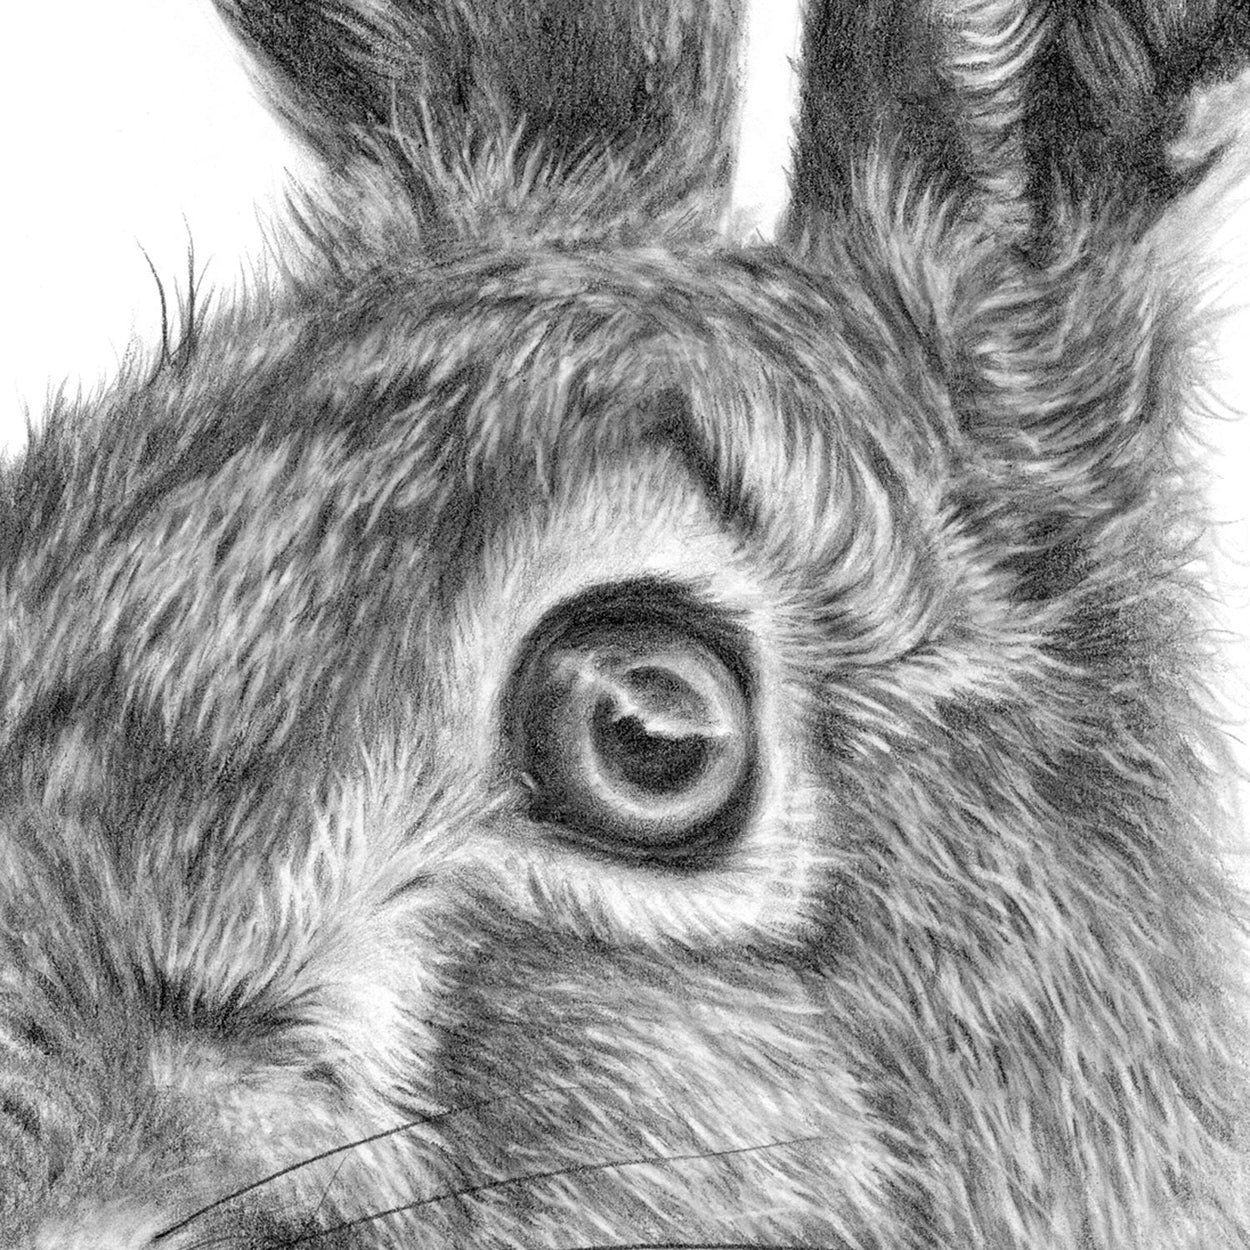 Hare Drawing Close-up 1 - The Thriving Wild - Jill Dimond